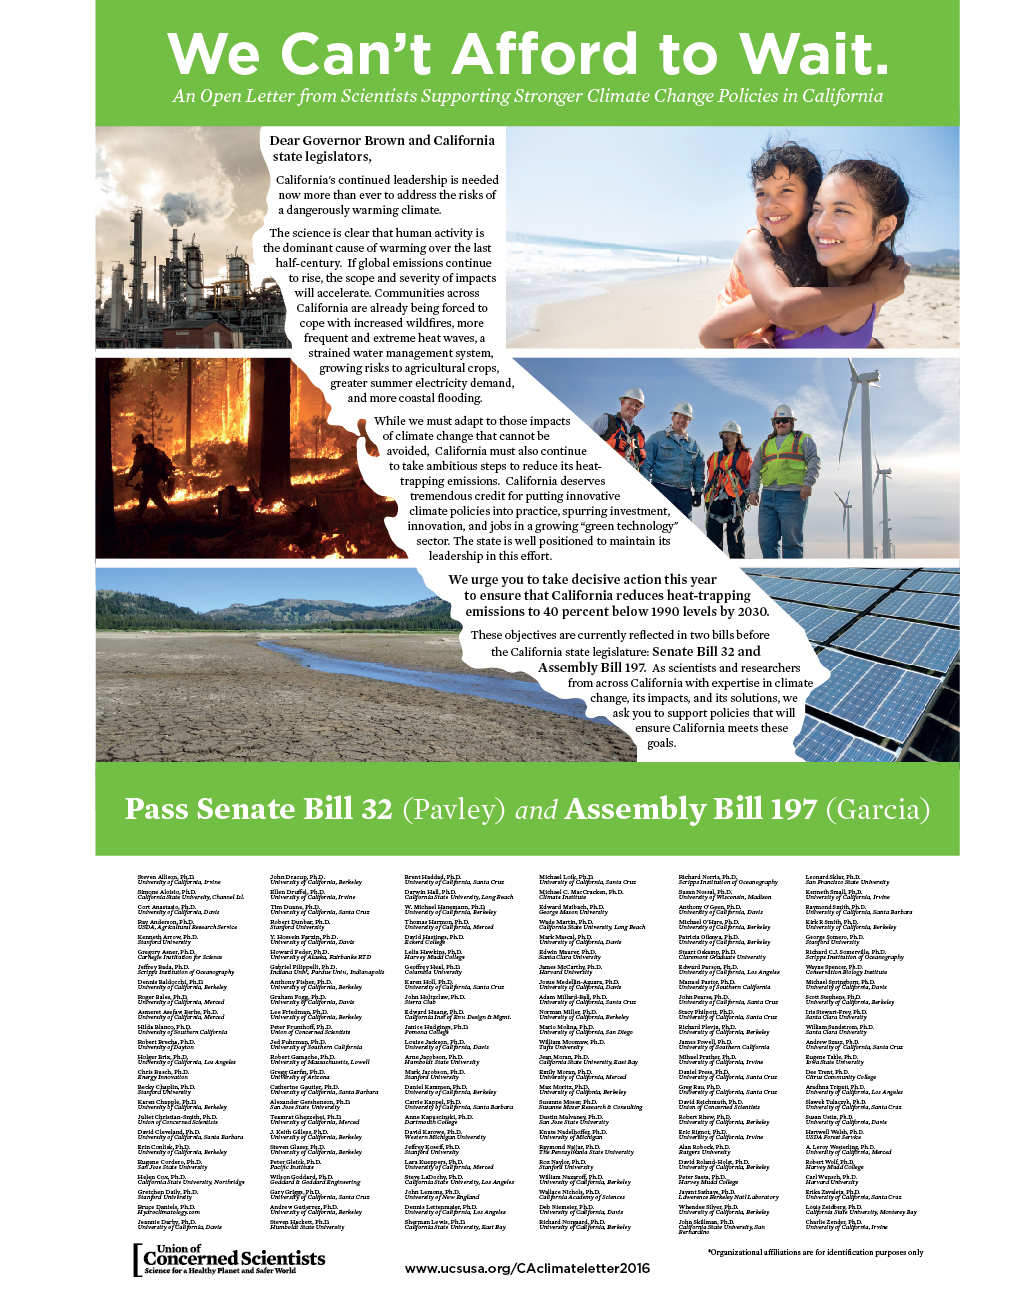 144 scientists, economists, and other scholars are urging passage of two climate change bills before the California Legislature, Senate Bill 32 (Pavley) and Assembly Bill 197 (E. Garcia).